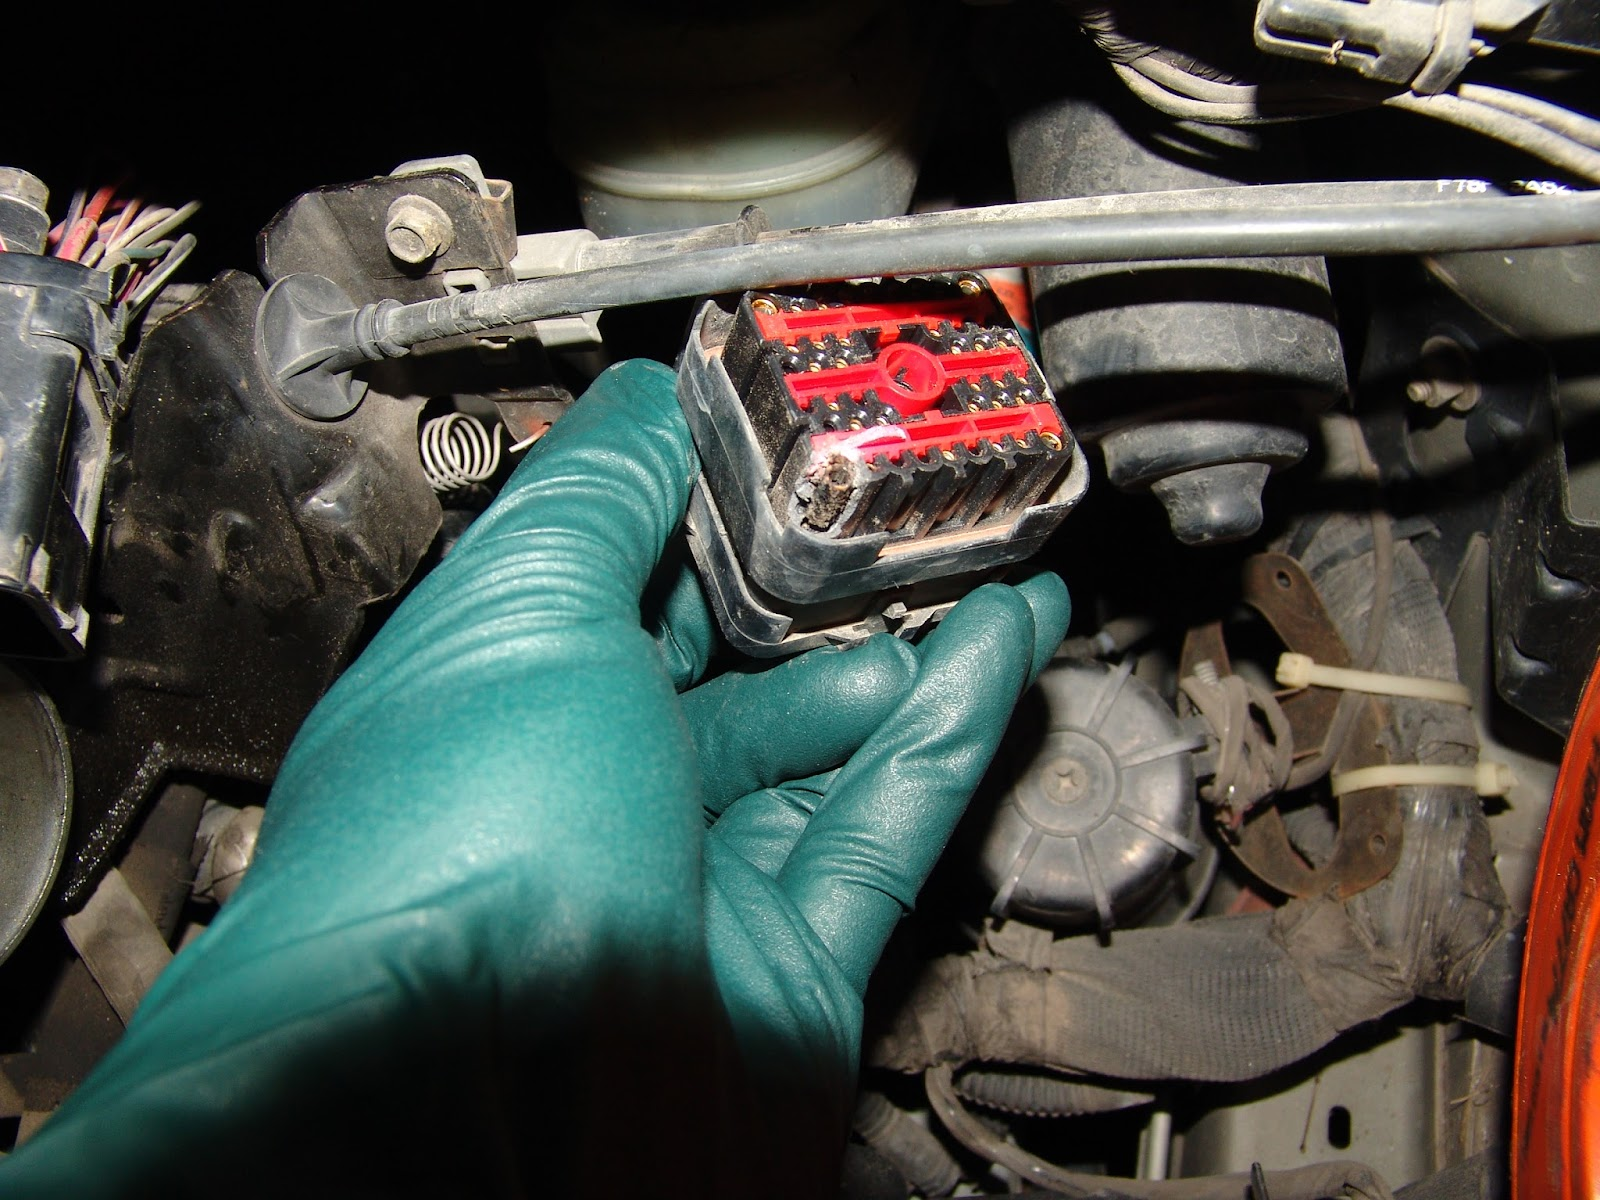 1998 Ford Ranger Electricala Burnt Fuse In The Engine Compartment